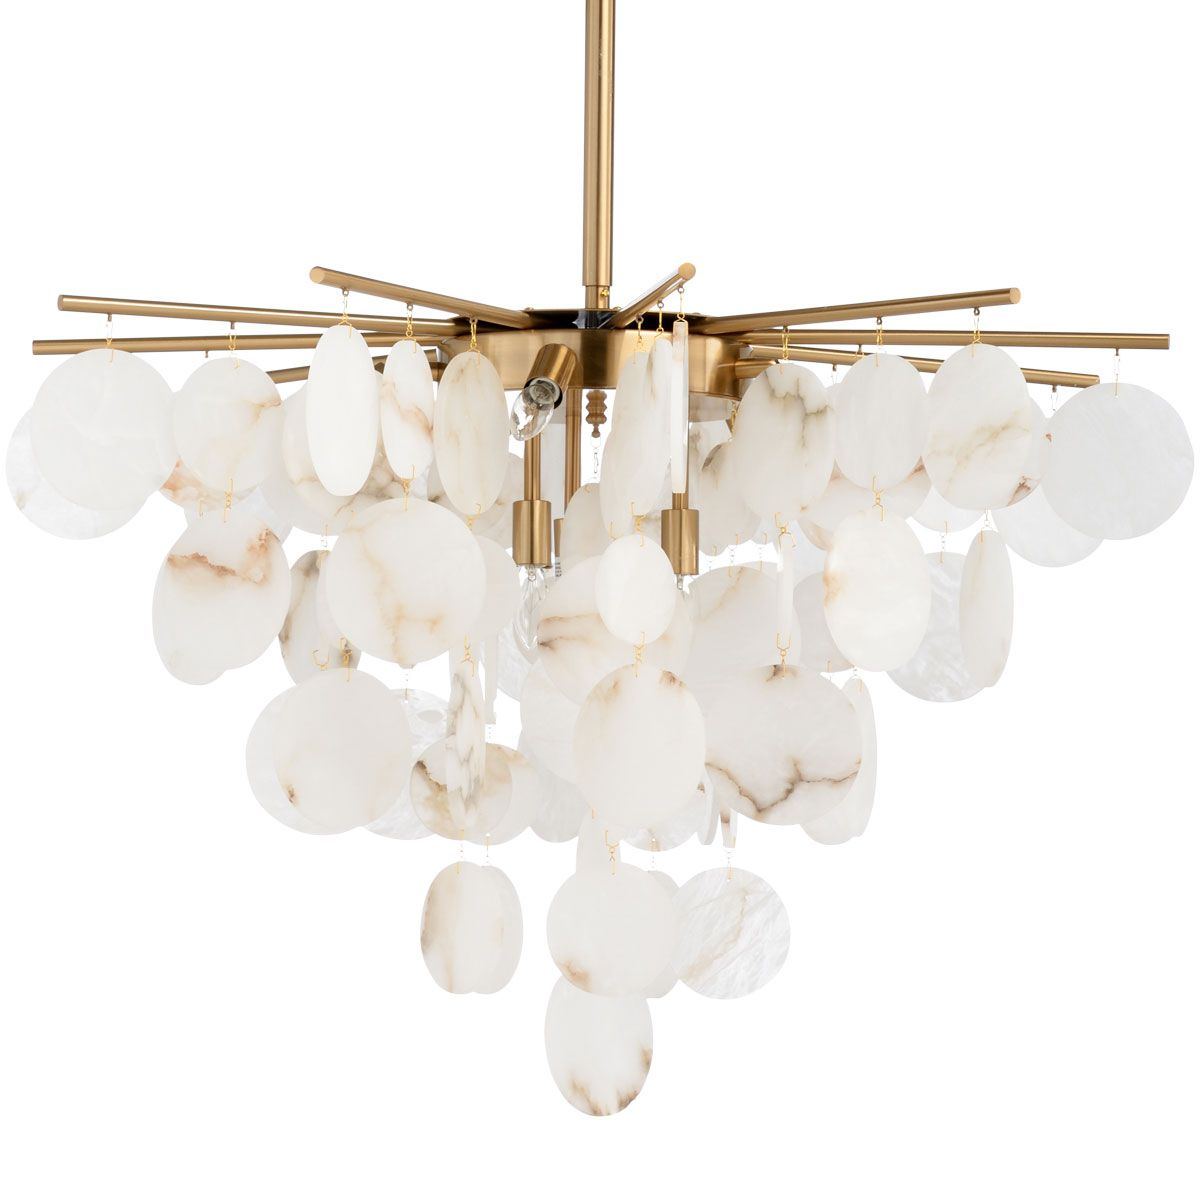 Alabaster And Brass Chandelier Natural White Alabaster Discs Hung